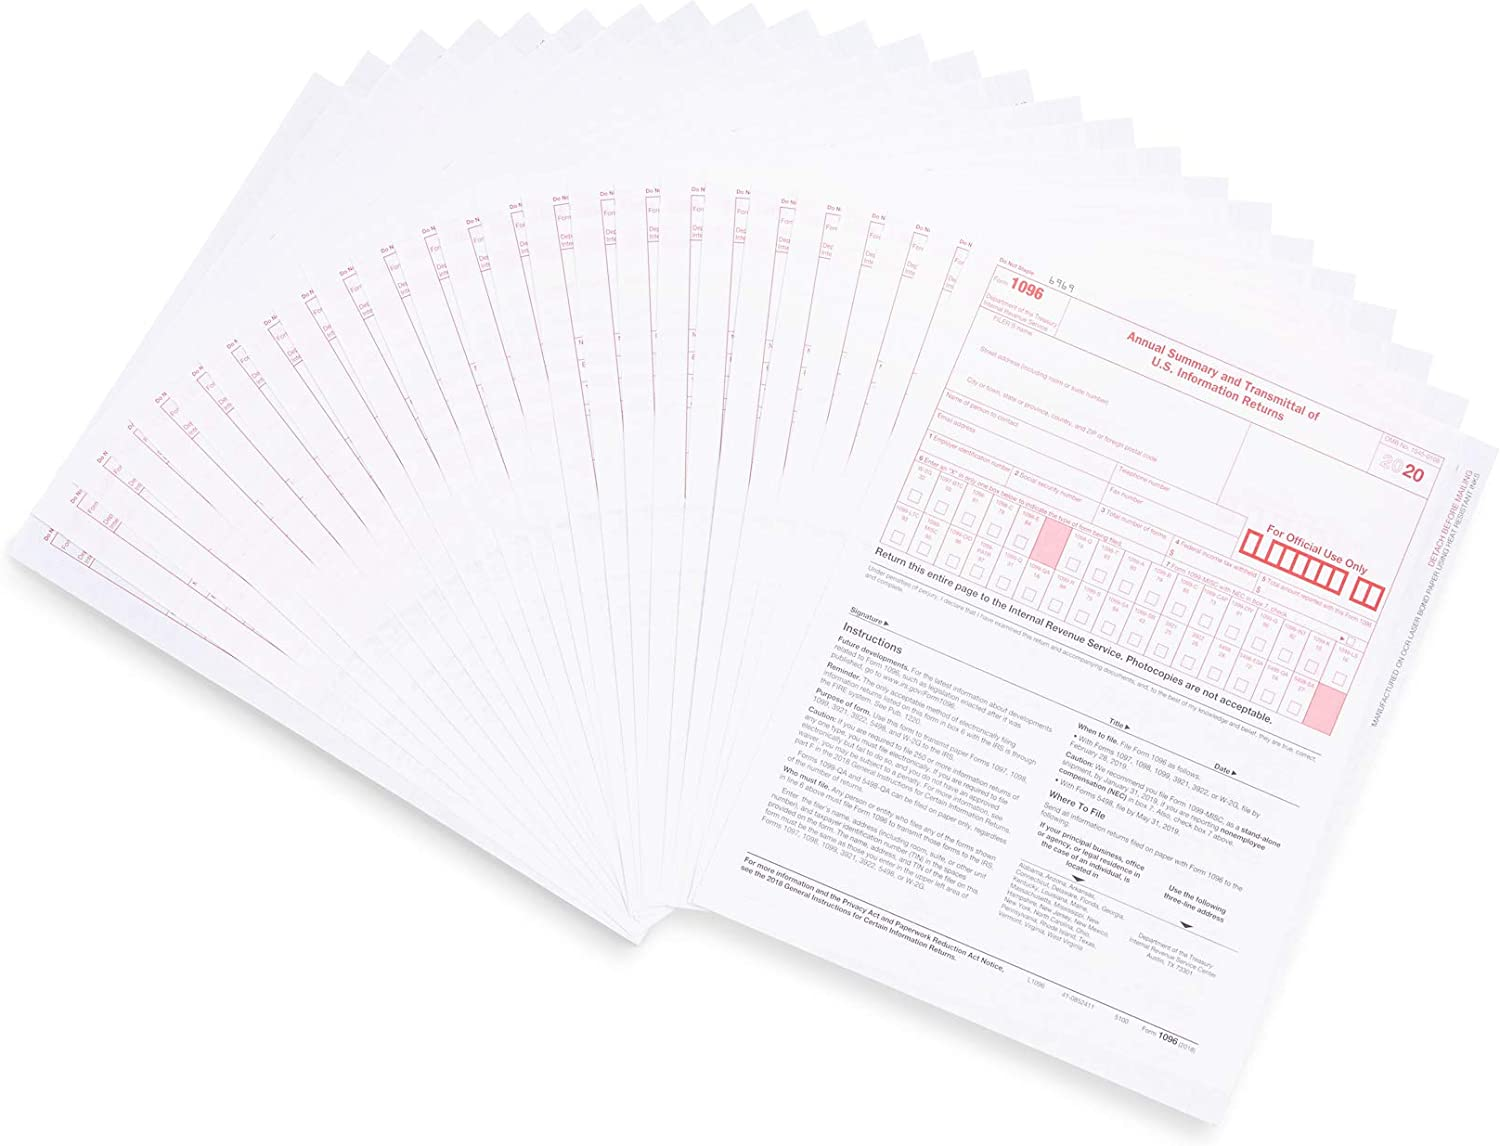 1096 Transmittal 2020 Tax Forms, 25 Pack of 1096 Summary Laser Forms, Compatible with QuickBooks and Accounting Software : Office Products